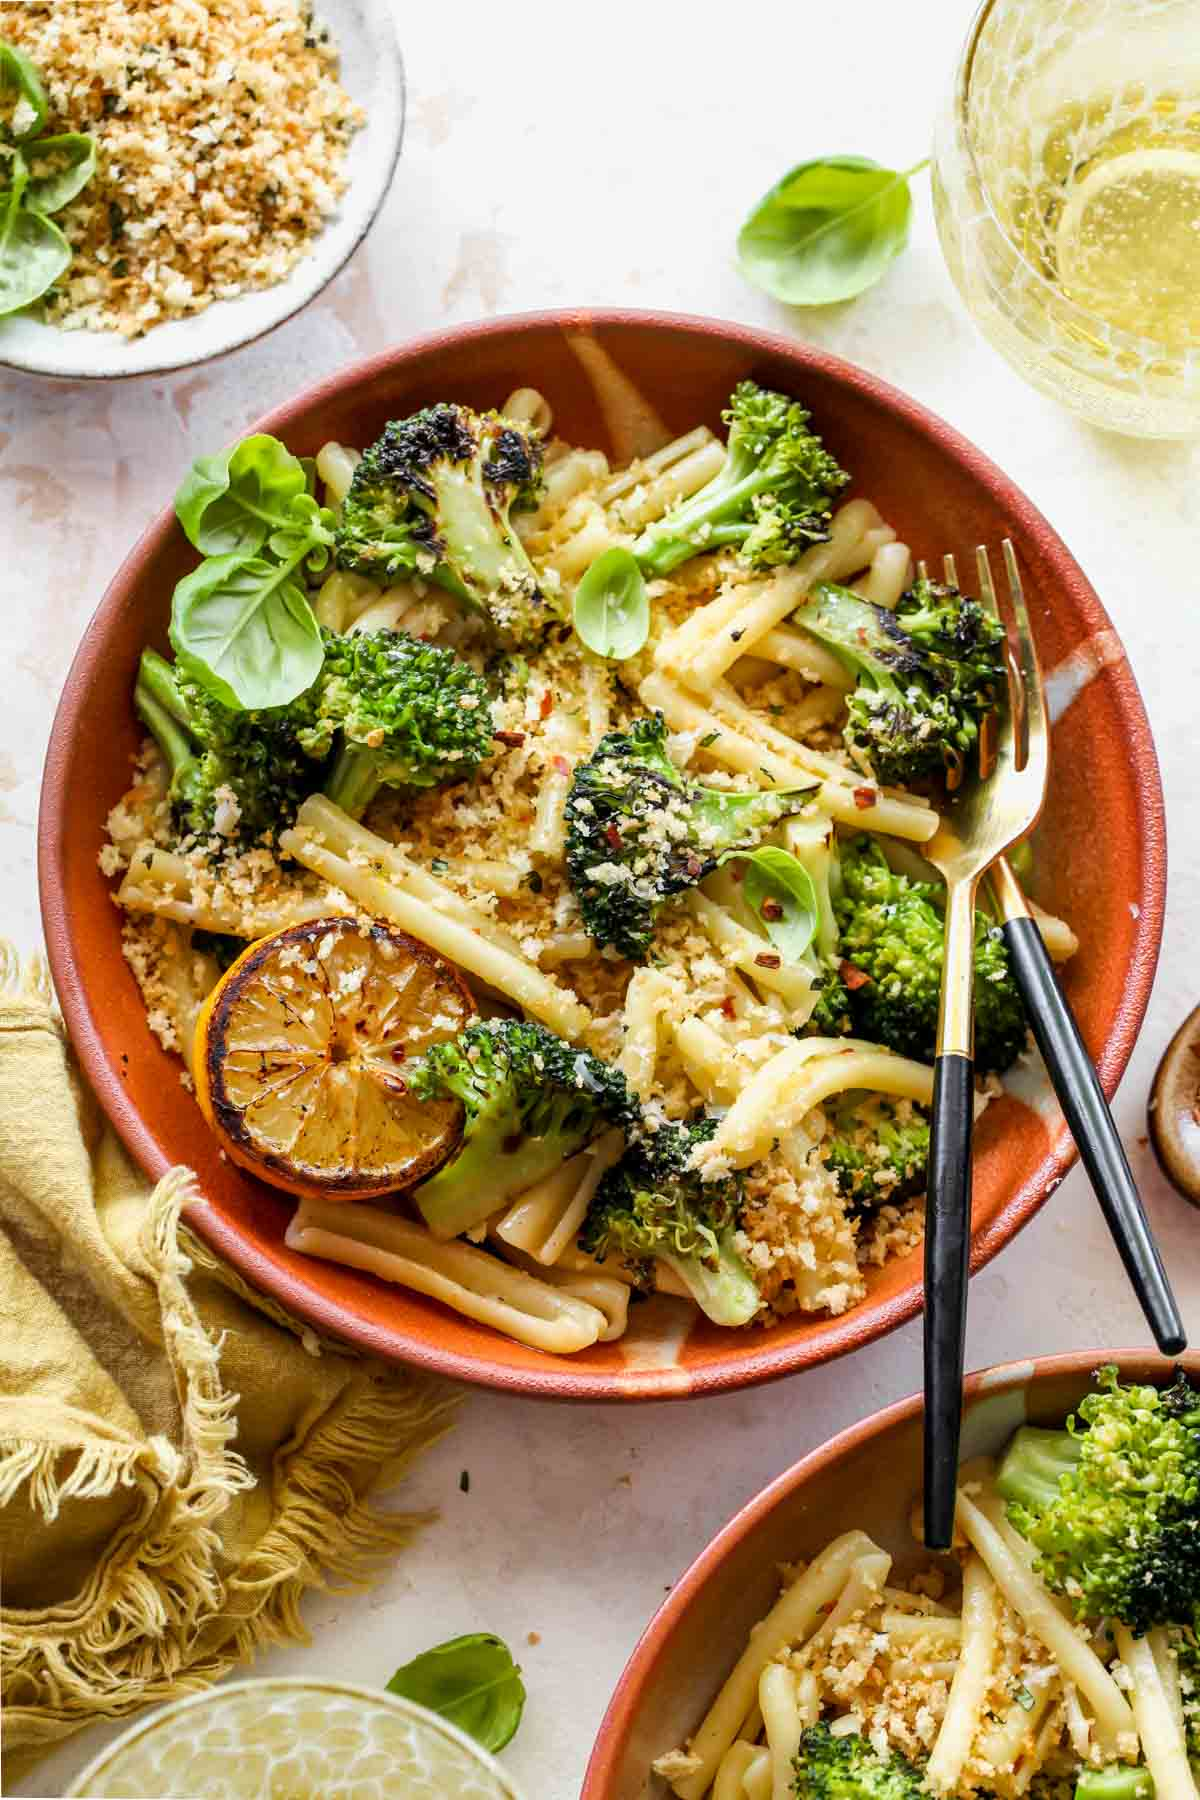 Broccoli pasta in a bowl topped with panko breadcrumbs